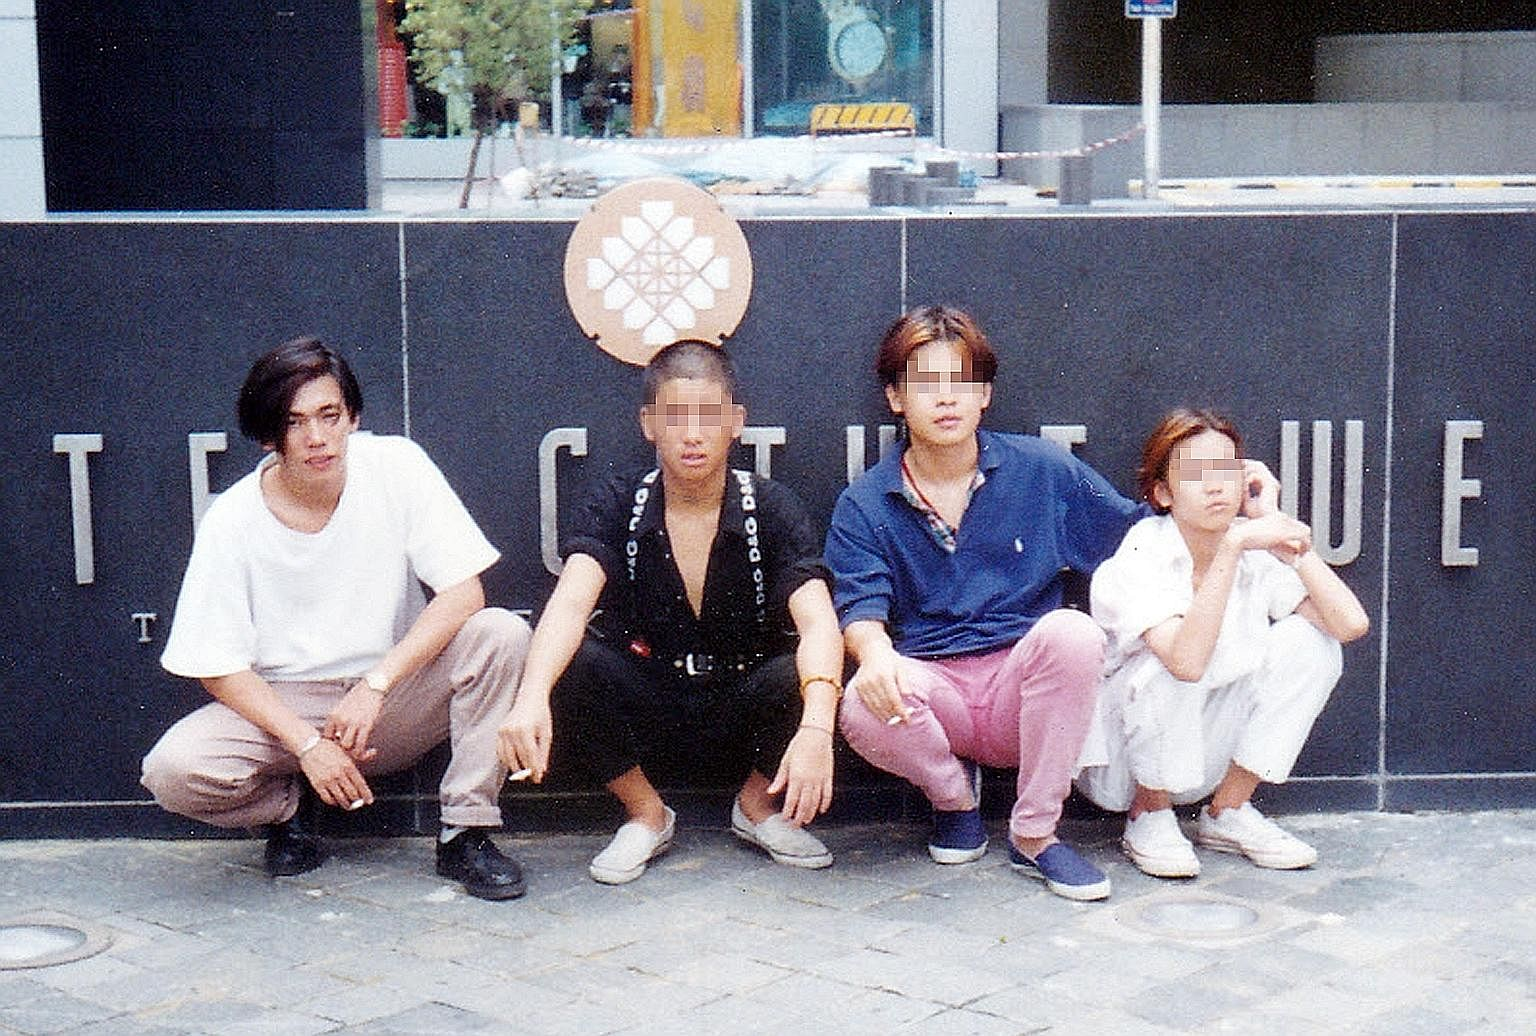 Mr Tan with students at the NUS Business School after giving a talk on social entrepreneurship. He also makes prison visits to counsel and encourage young inmates. Mr Tan (left) with friends in a photo taken when he was 21, just before he was sentenc